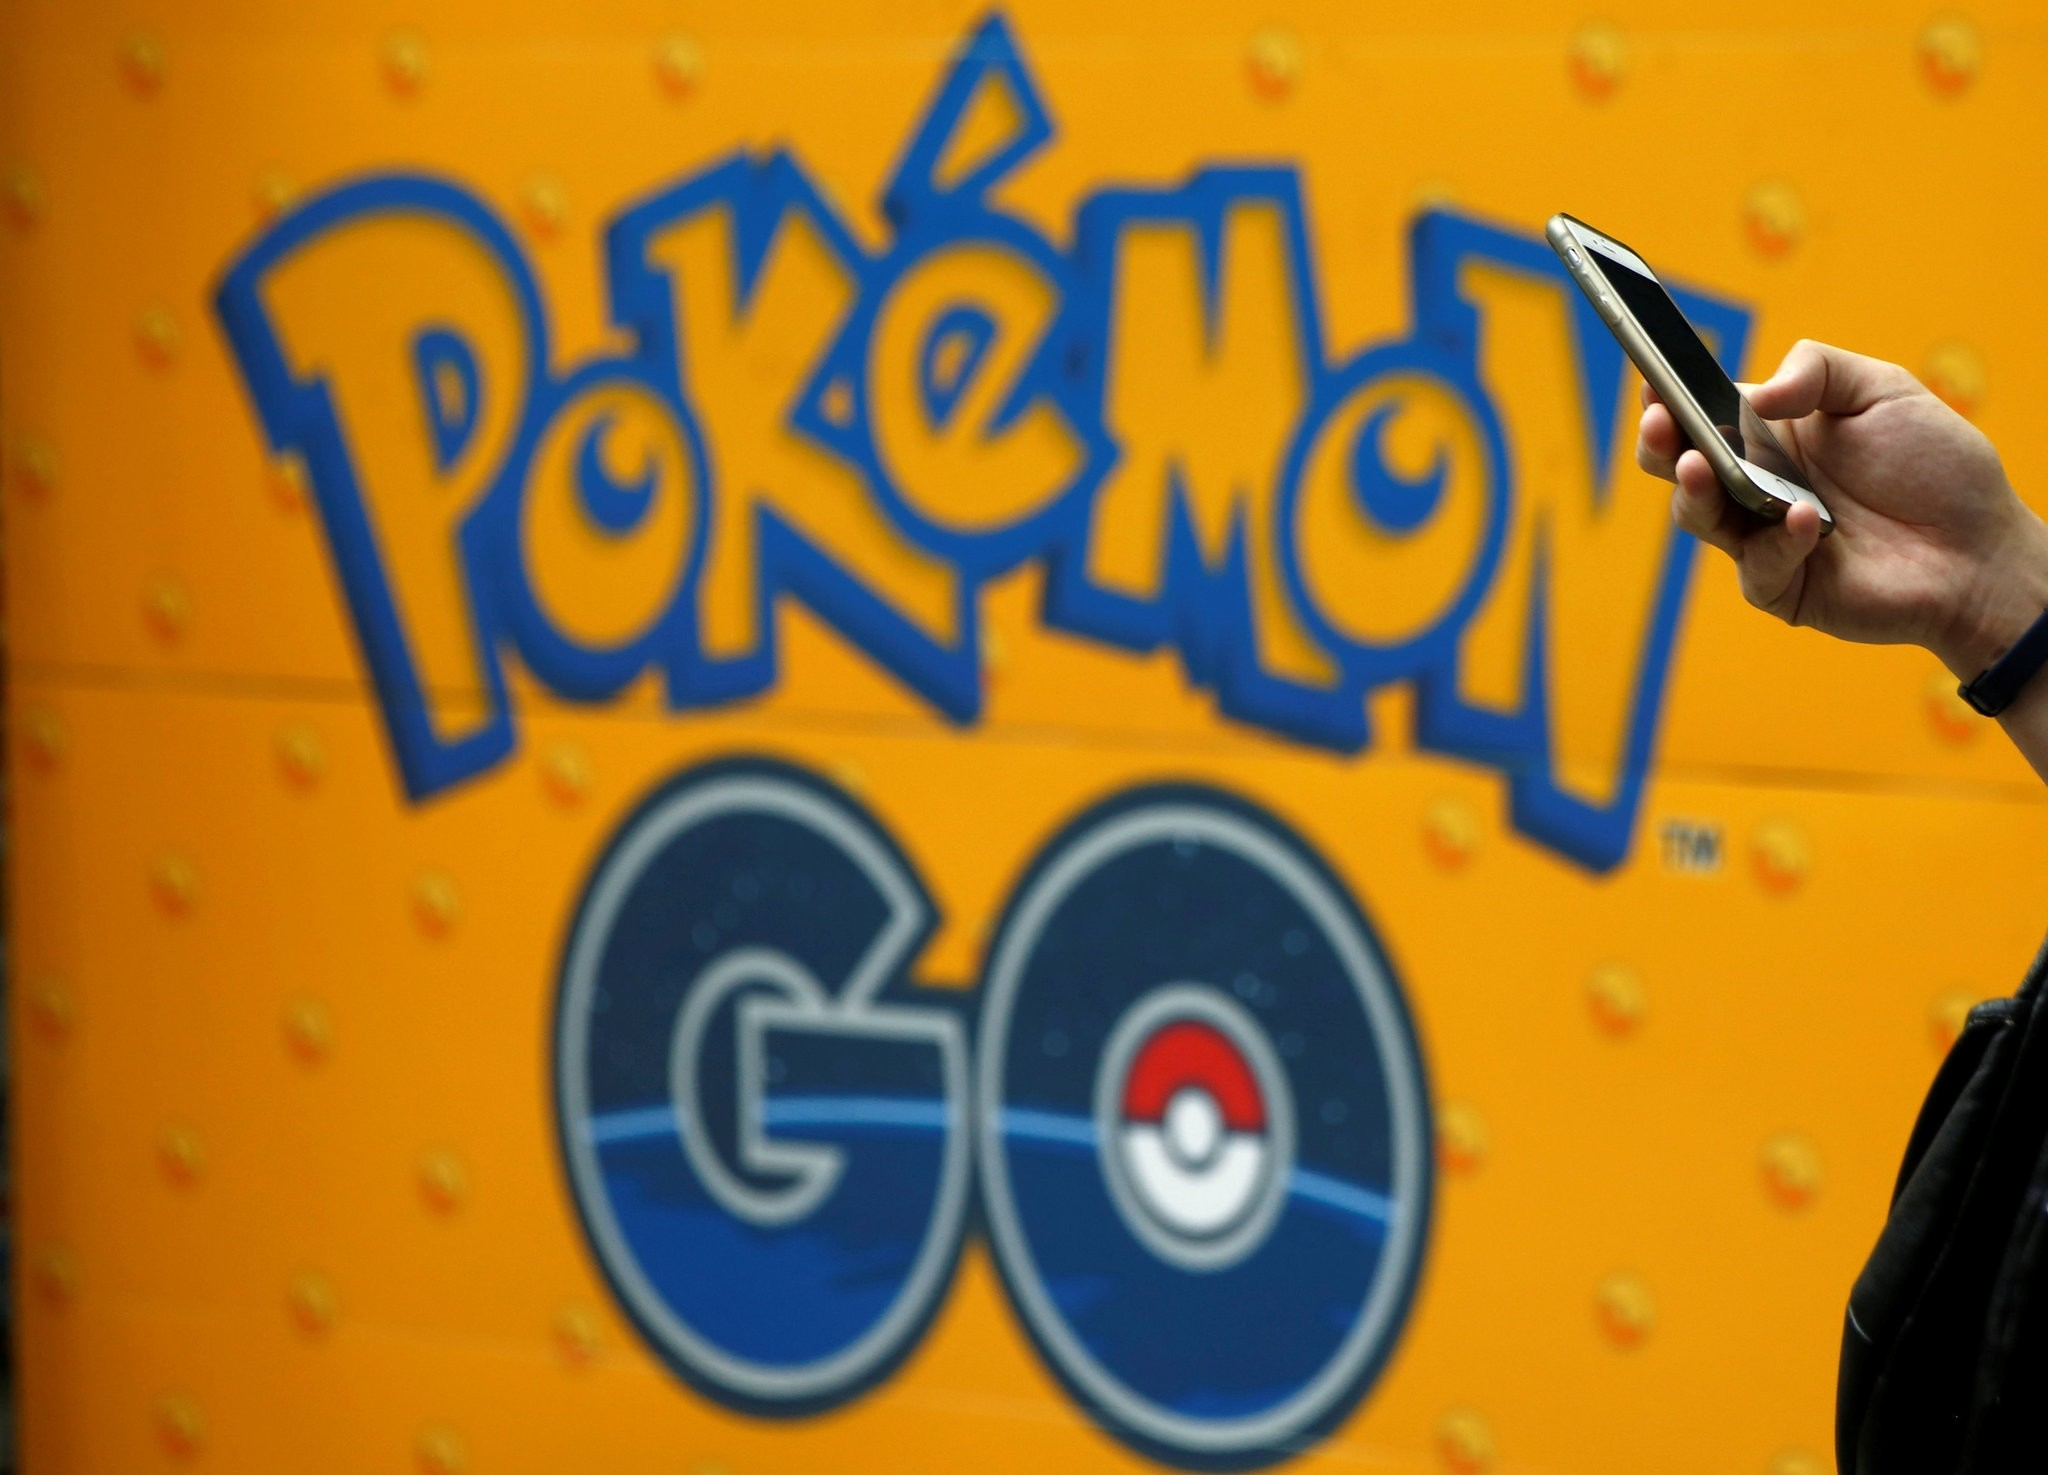 A man uses a mobile phone in front of an advertisement board bearing the image of Pokemon Go at an electronic shop in Tokyo, Japan, July 27, 2016. (REUTERS Photo)